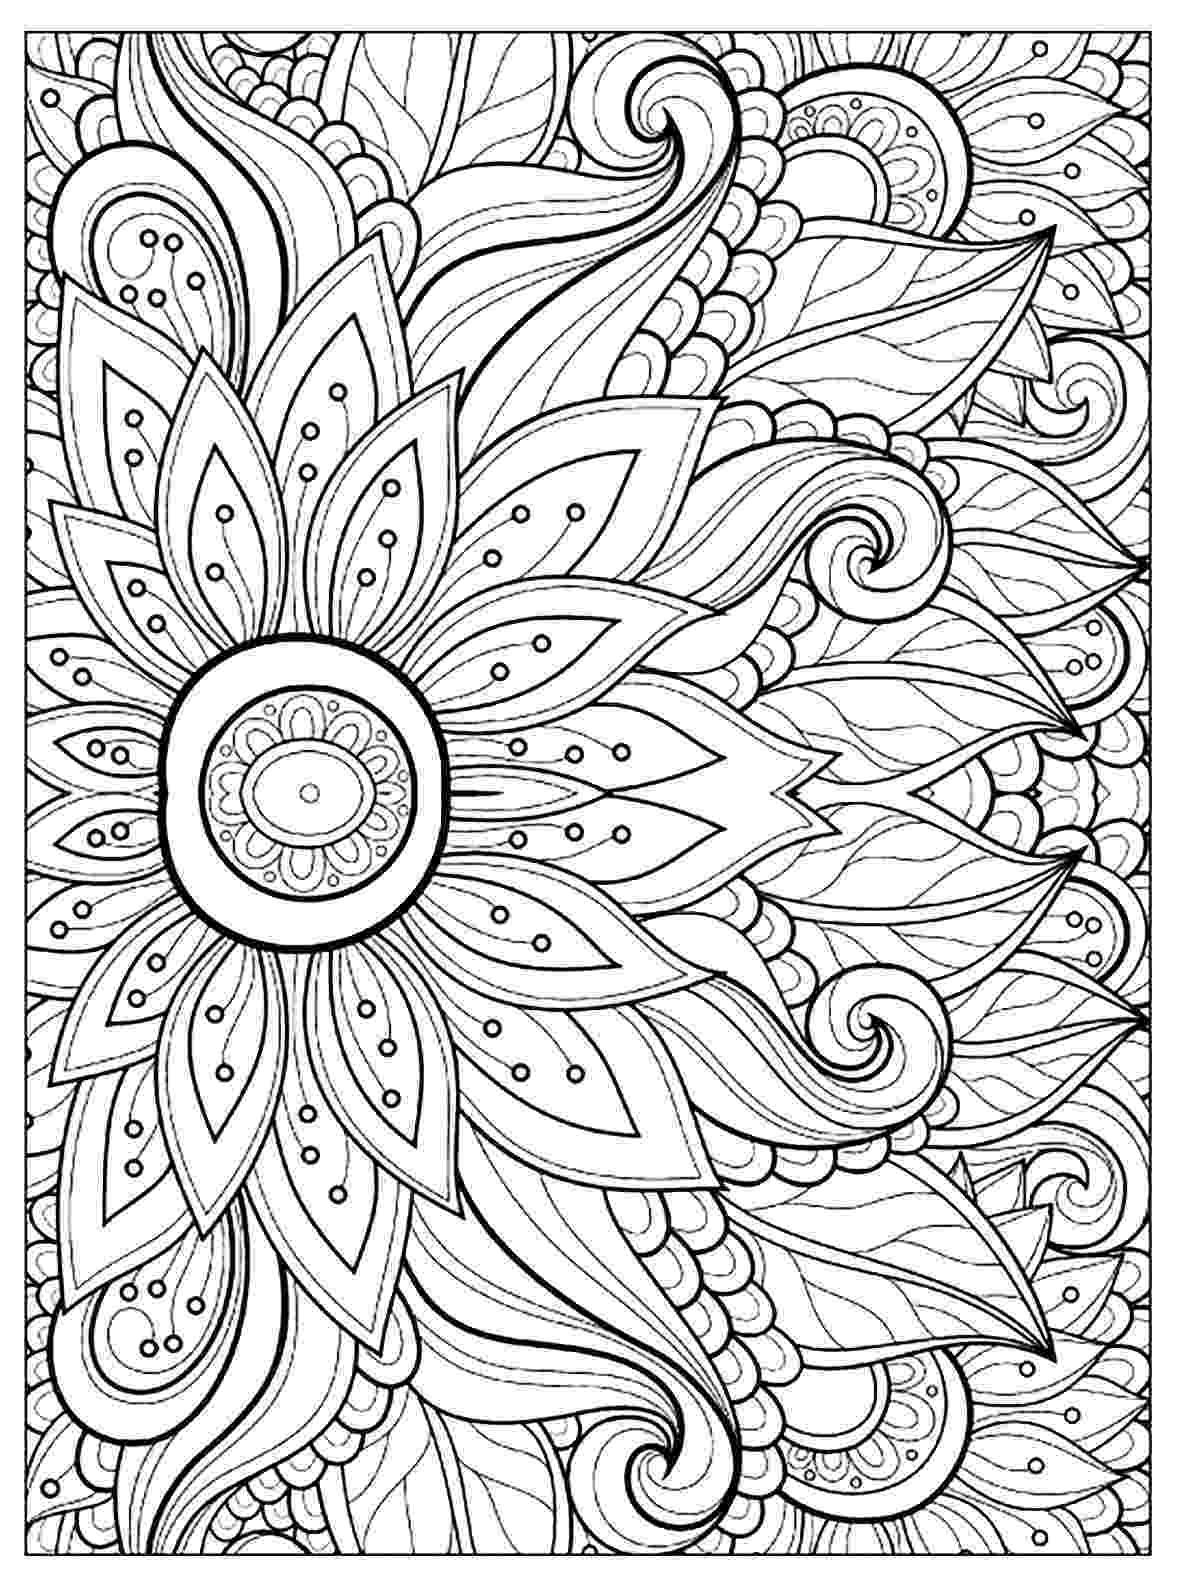 free printable flower coloring pages for adults flower with many petals flowers adult coloring pages free pages coloring printable adults flower for